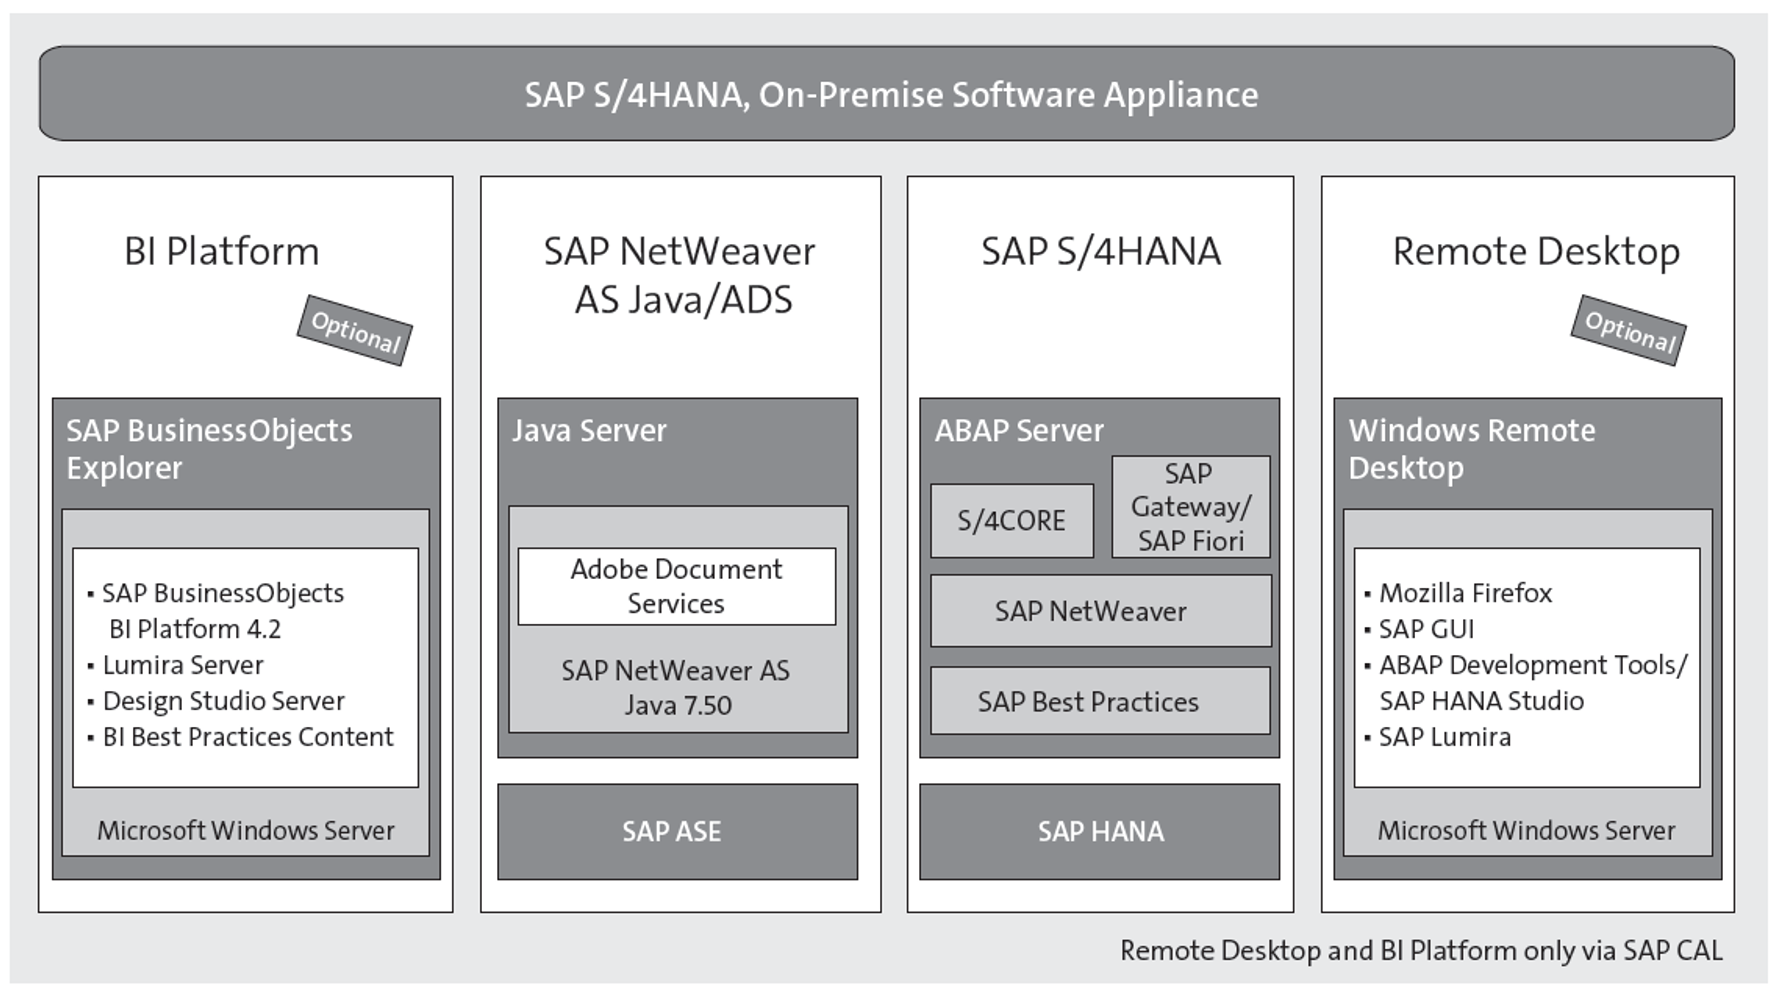 SAP S/4HANA Fully Activated Appliance Components